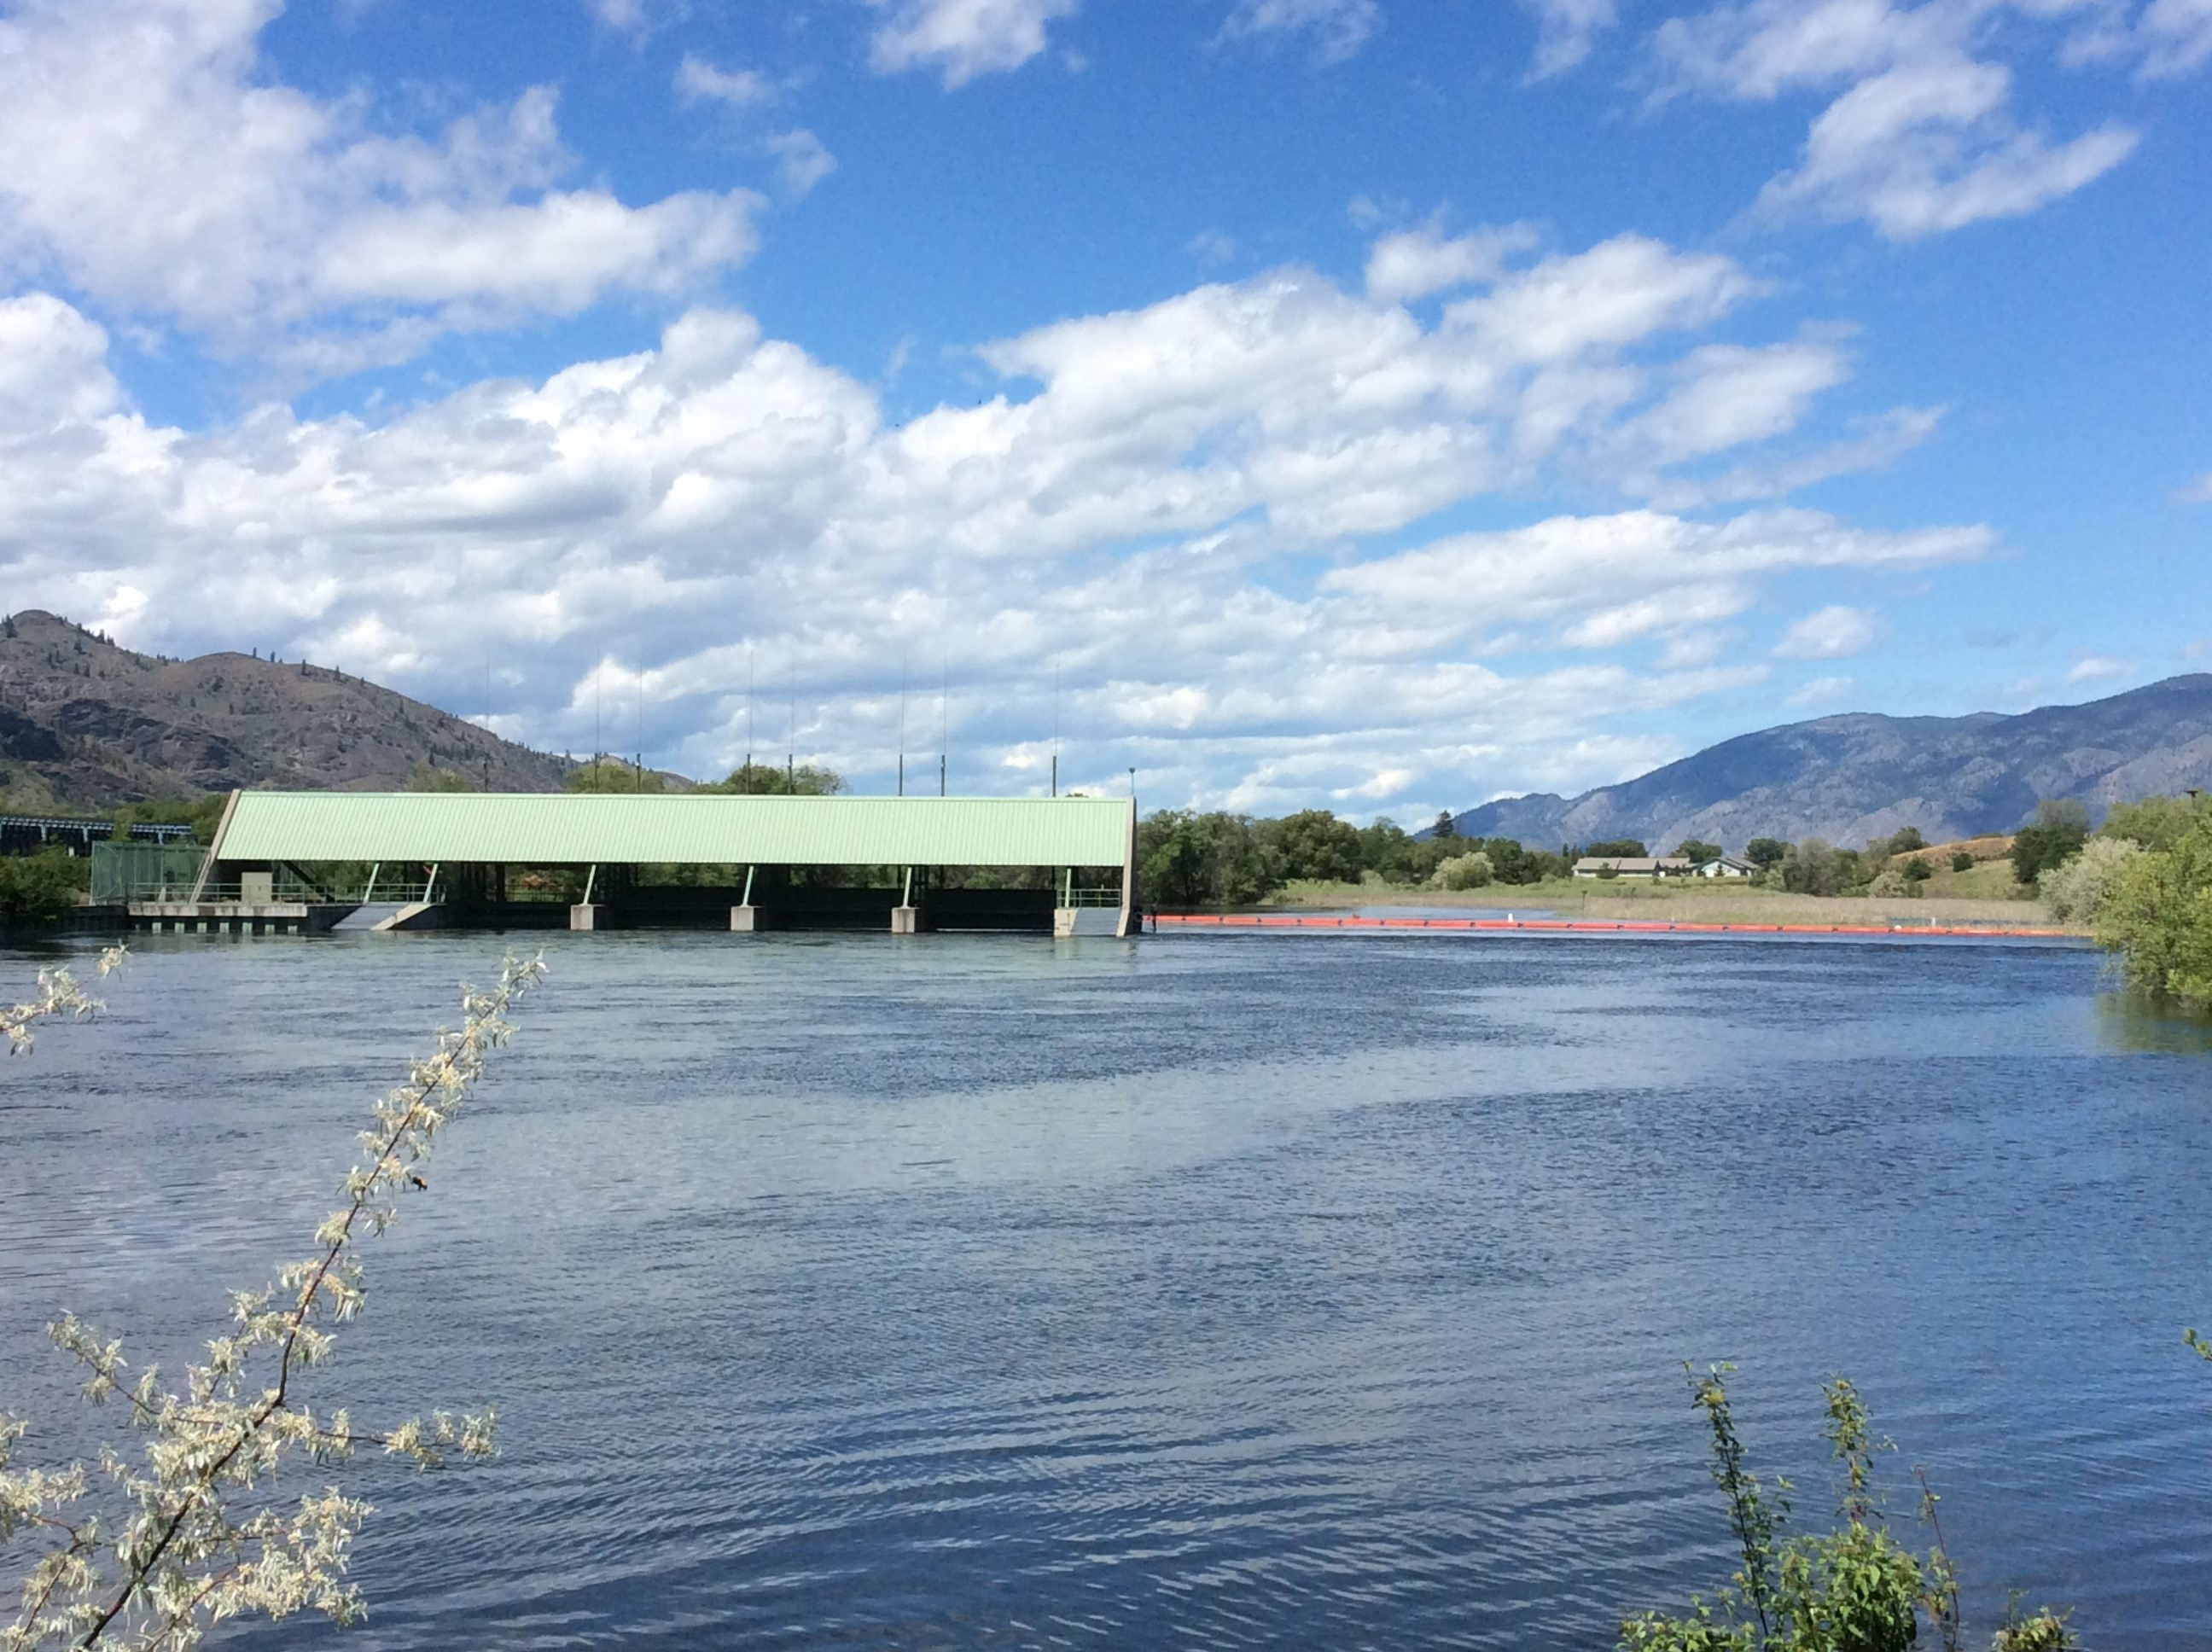 The spillway of Zosel Dam was inundated during floods in the Osoyoos Lake system in May and June, with water flowing over the top of it. Credit: Brian Symonds